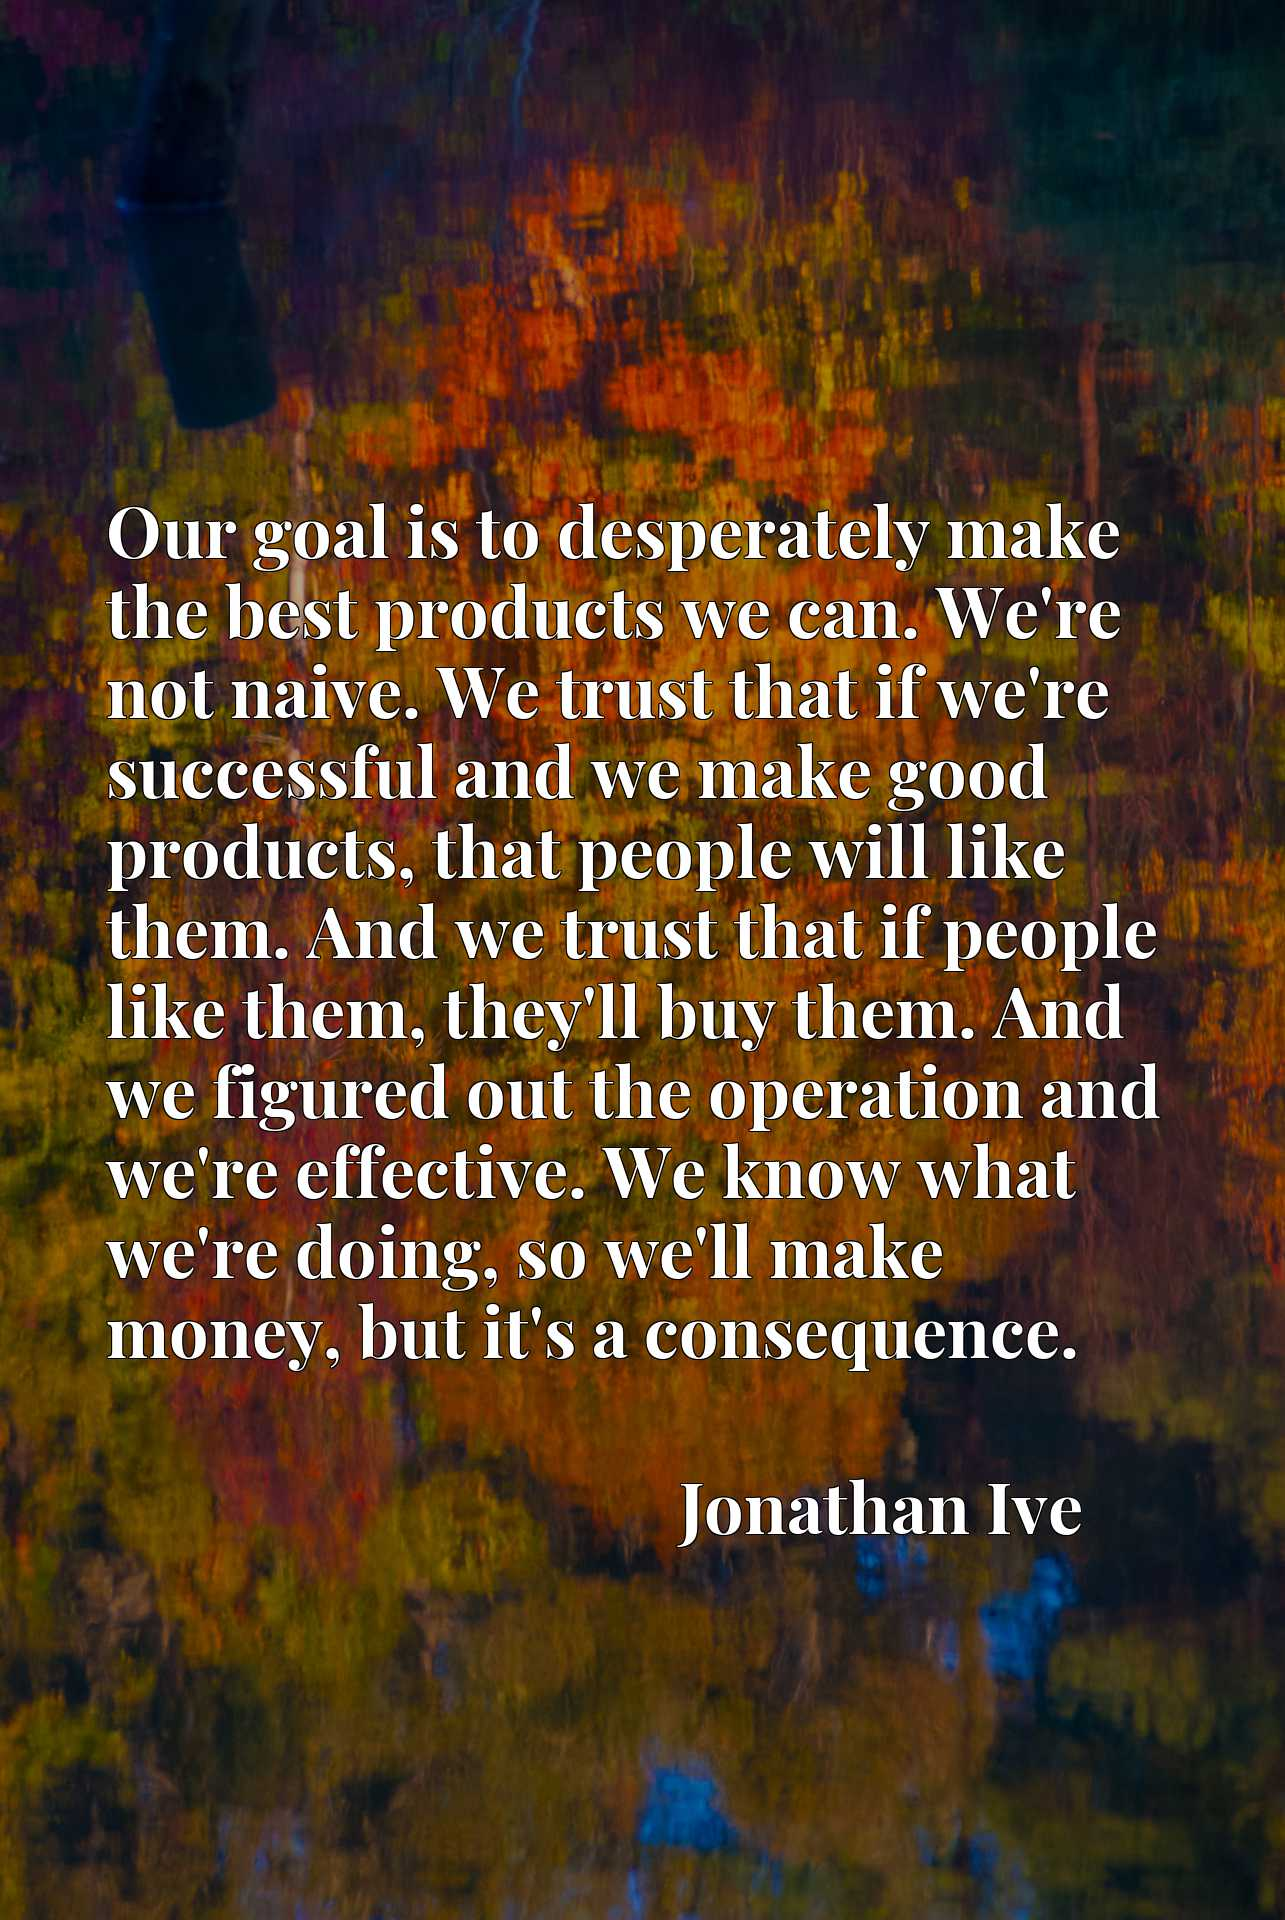 Our goal is to desperately make the best products we can. We're not naive. We trust that if we're successful and we make good products, that people will like them. And we trust that if people like them, they'll buy them. And we figured out the operation and we're effective. We know what we're doing, so we'll make money, but it's a consequence.